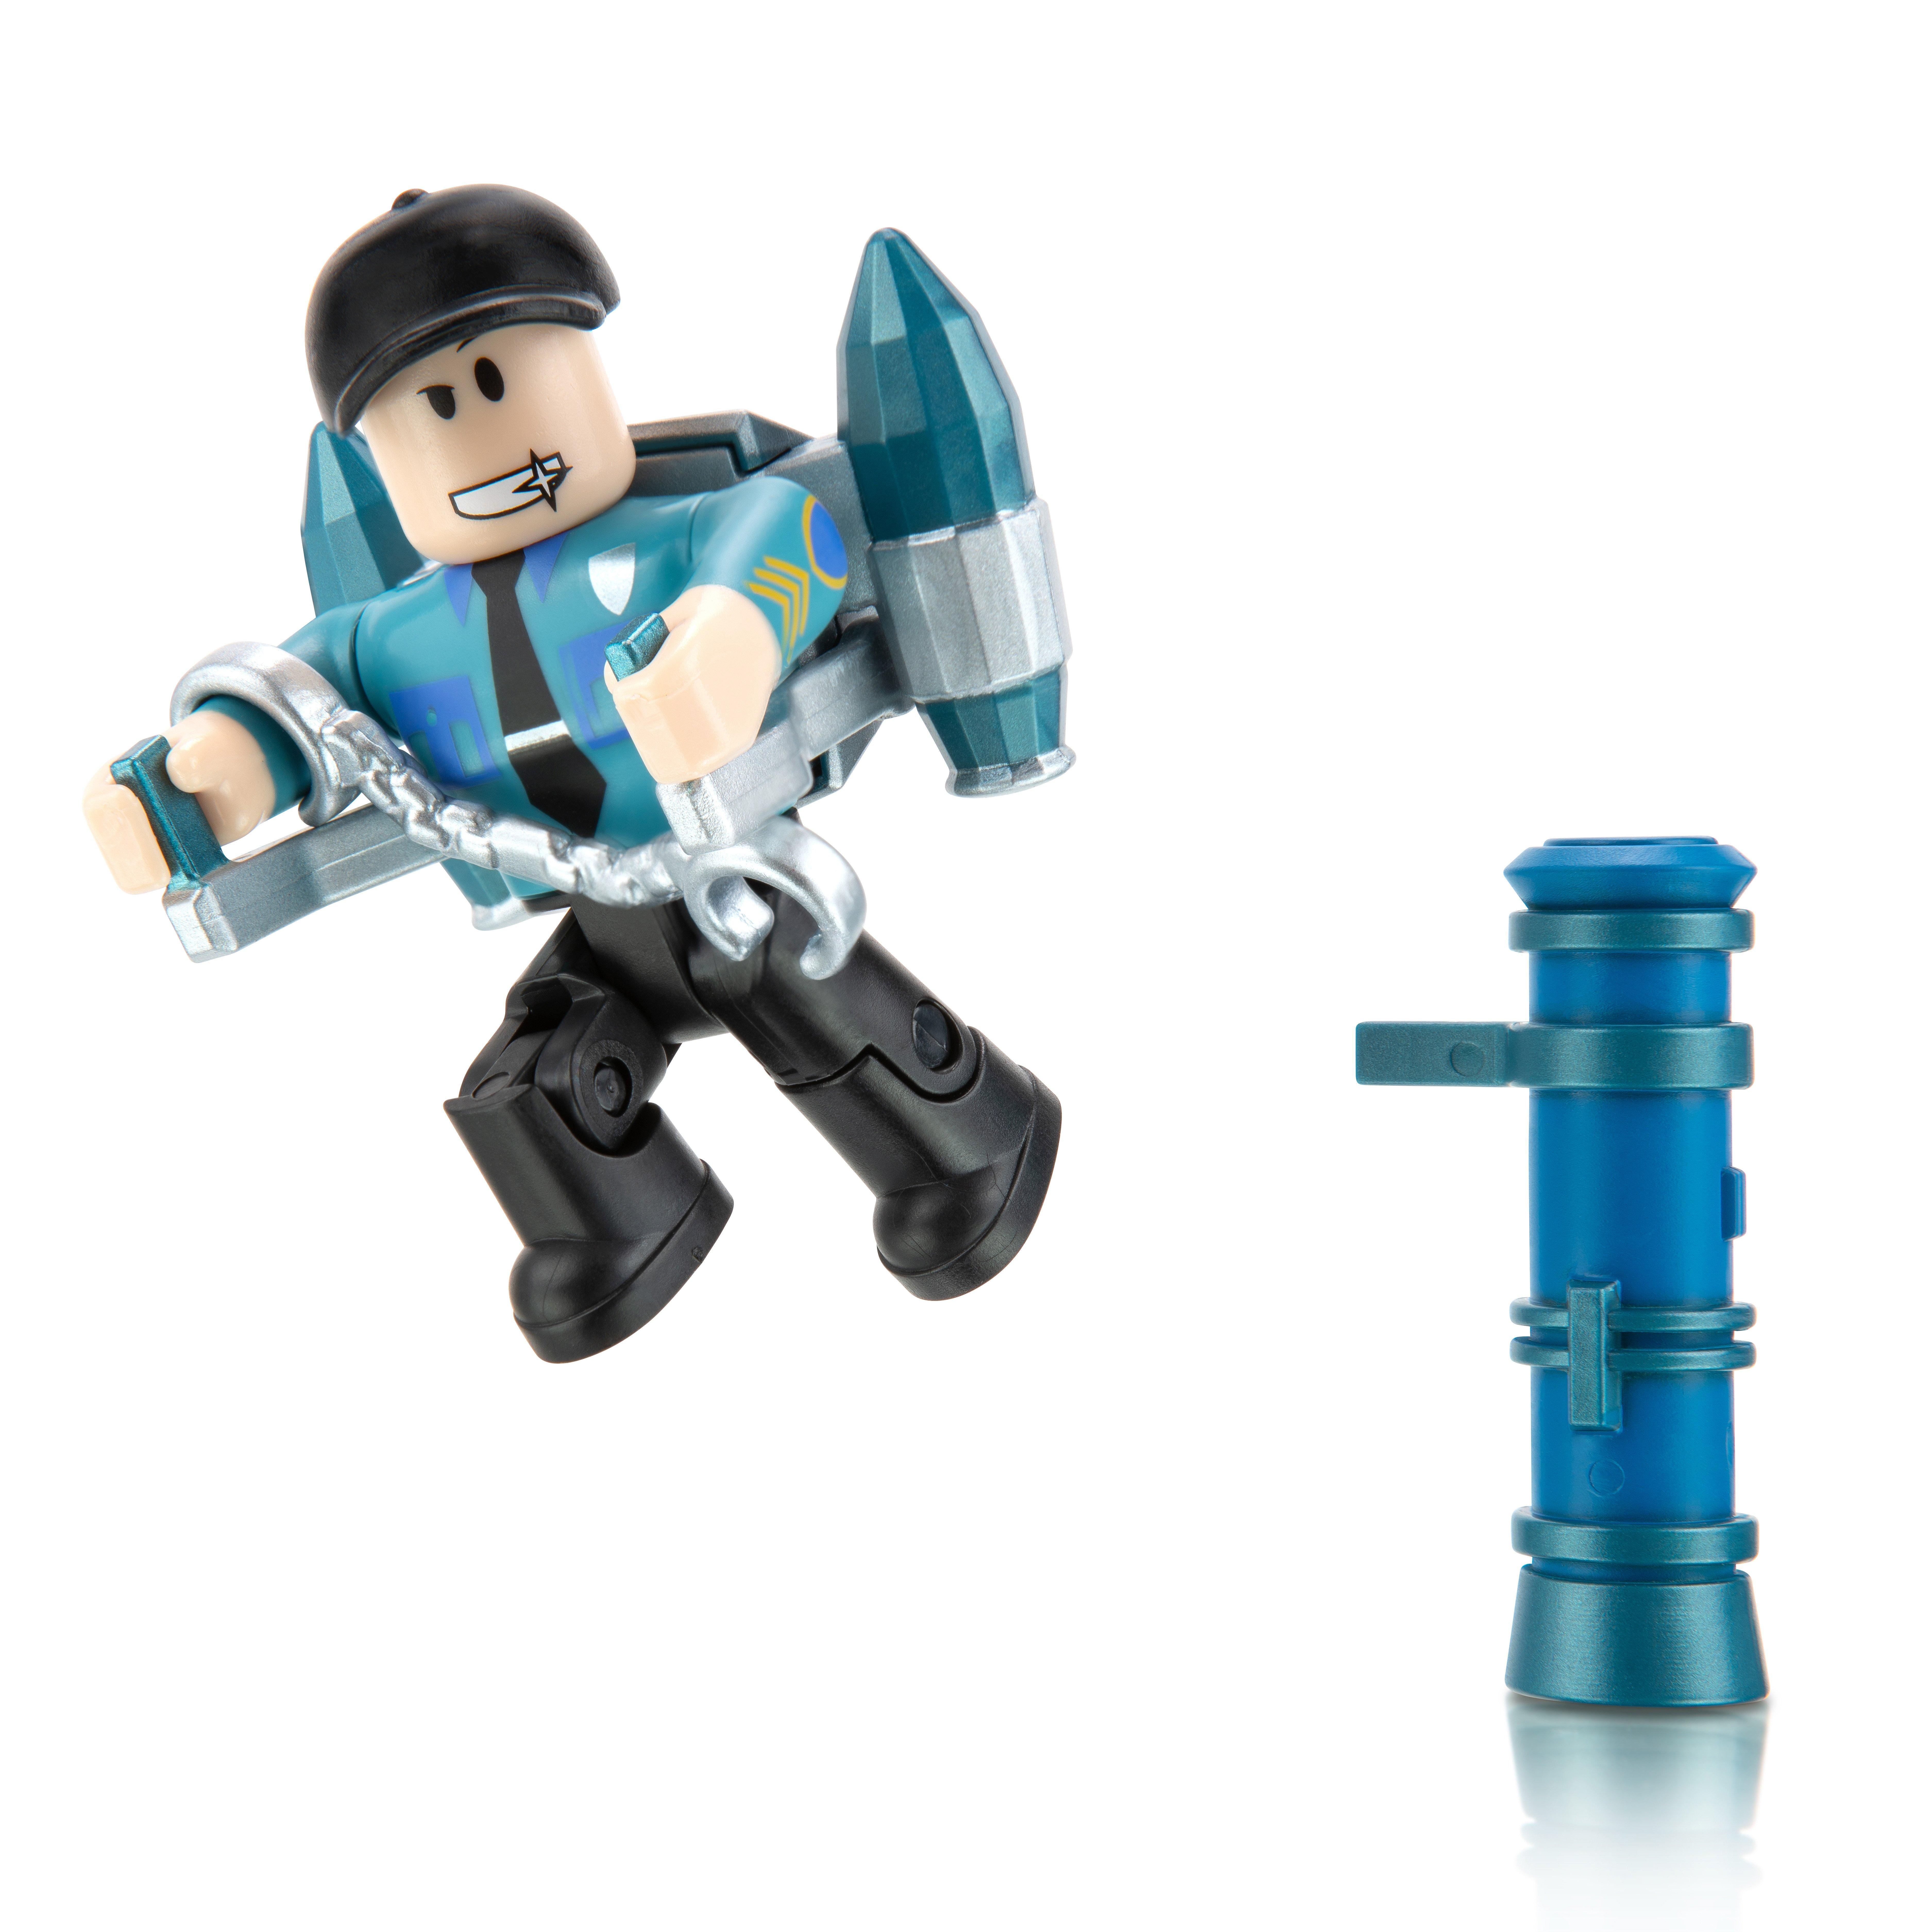 Roblox Character Toy Codes Roblox Figure Pack Assortment Gamestop